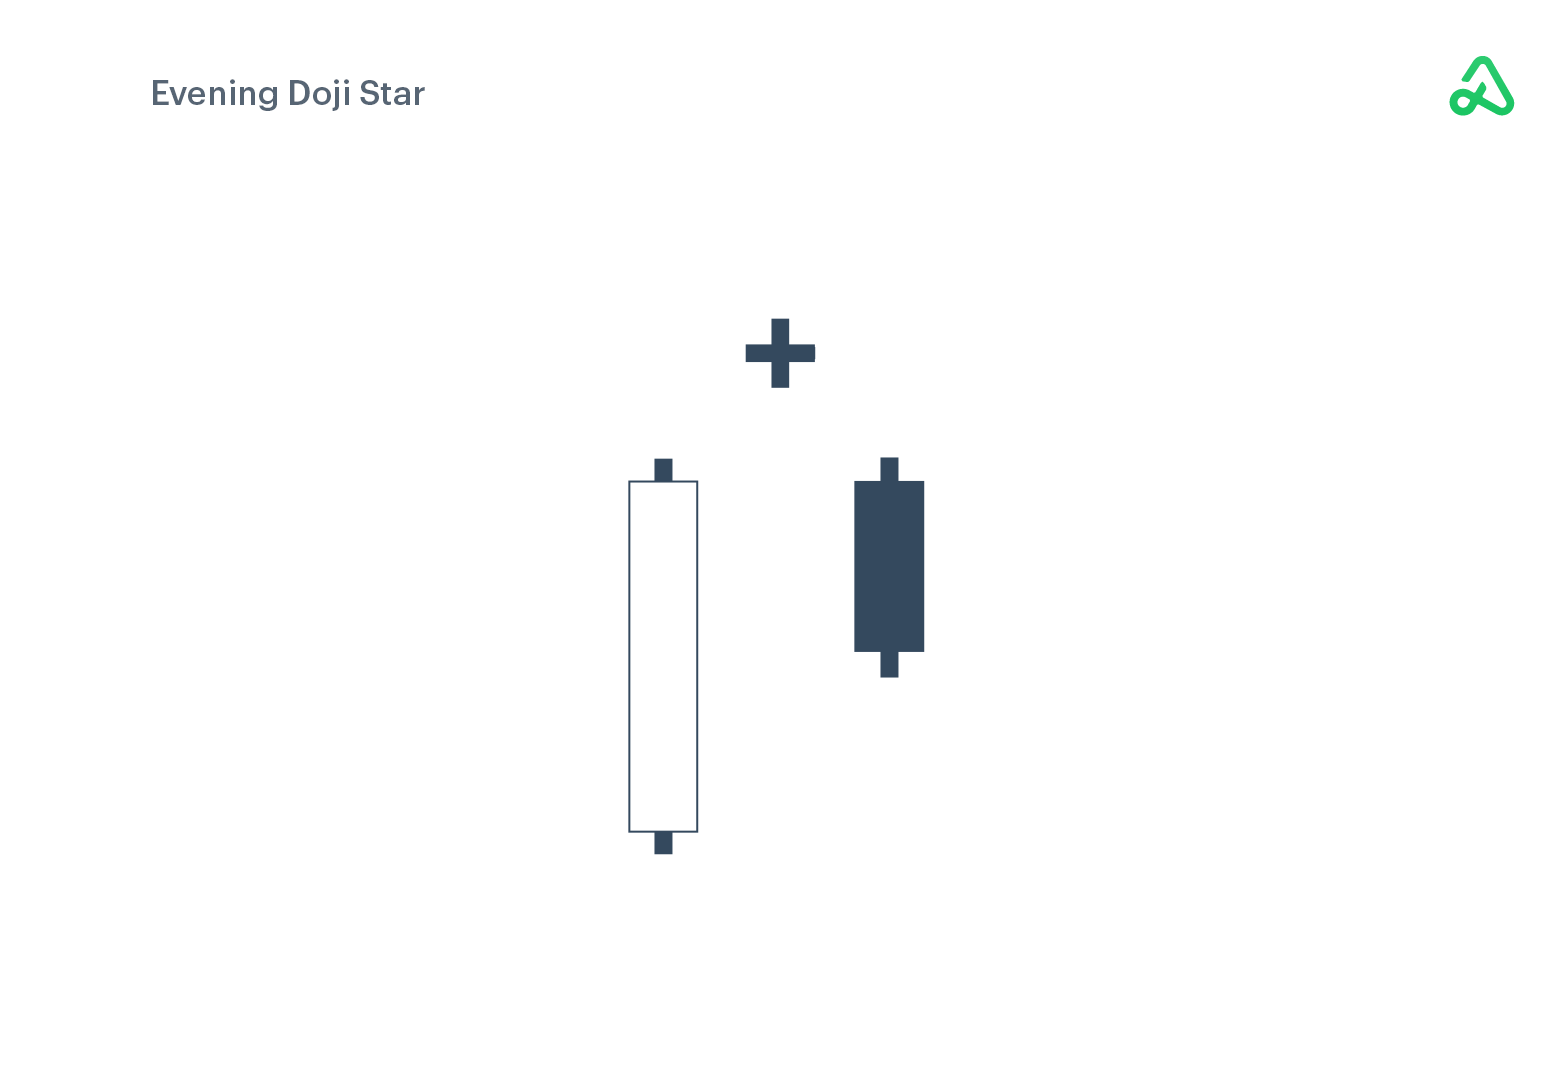 Evening Doji Star example image